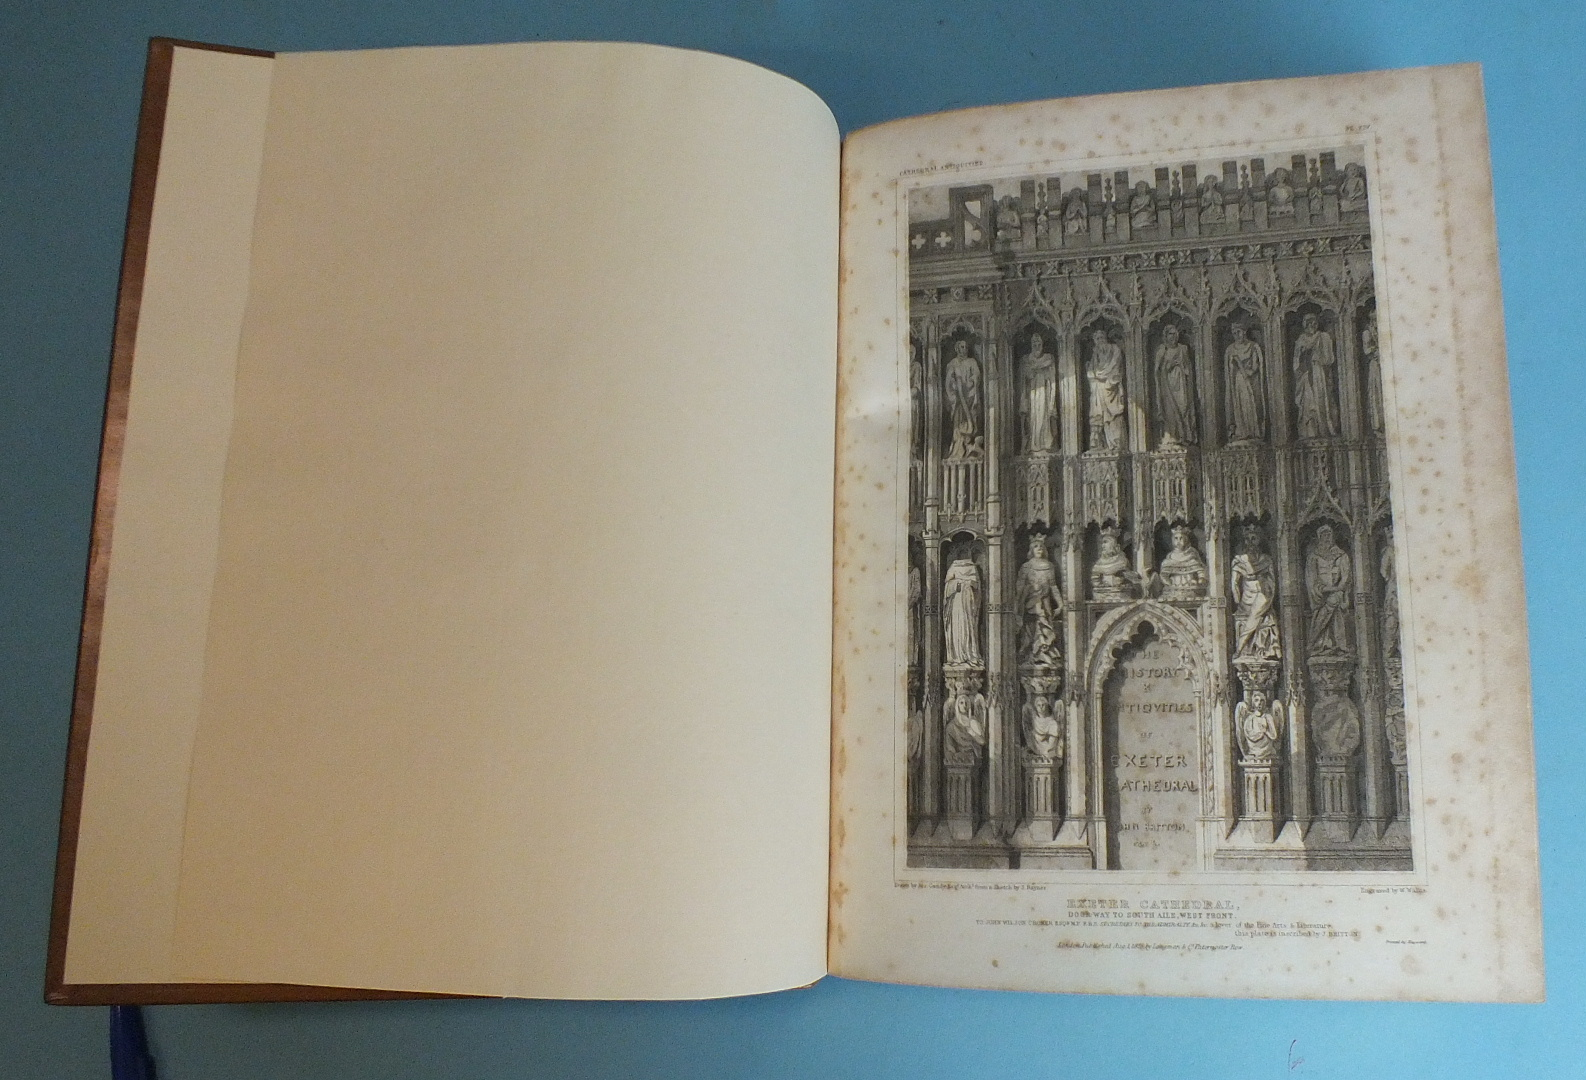 Lot 172 - Britton (John), The History and Antiquities of the Cathedral Church of Exeter, engr tp and 21 engr